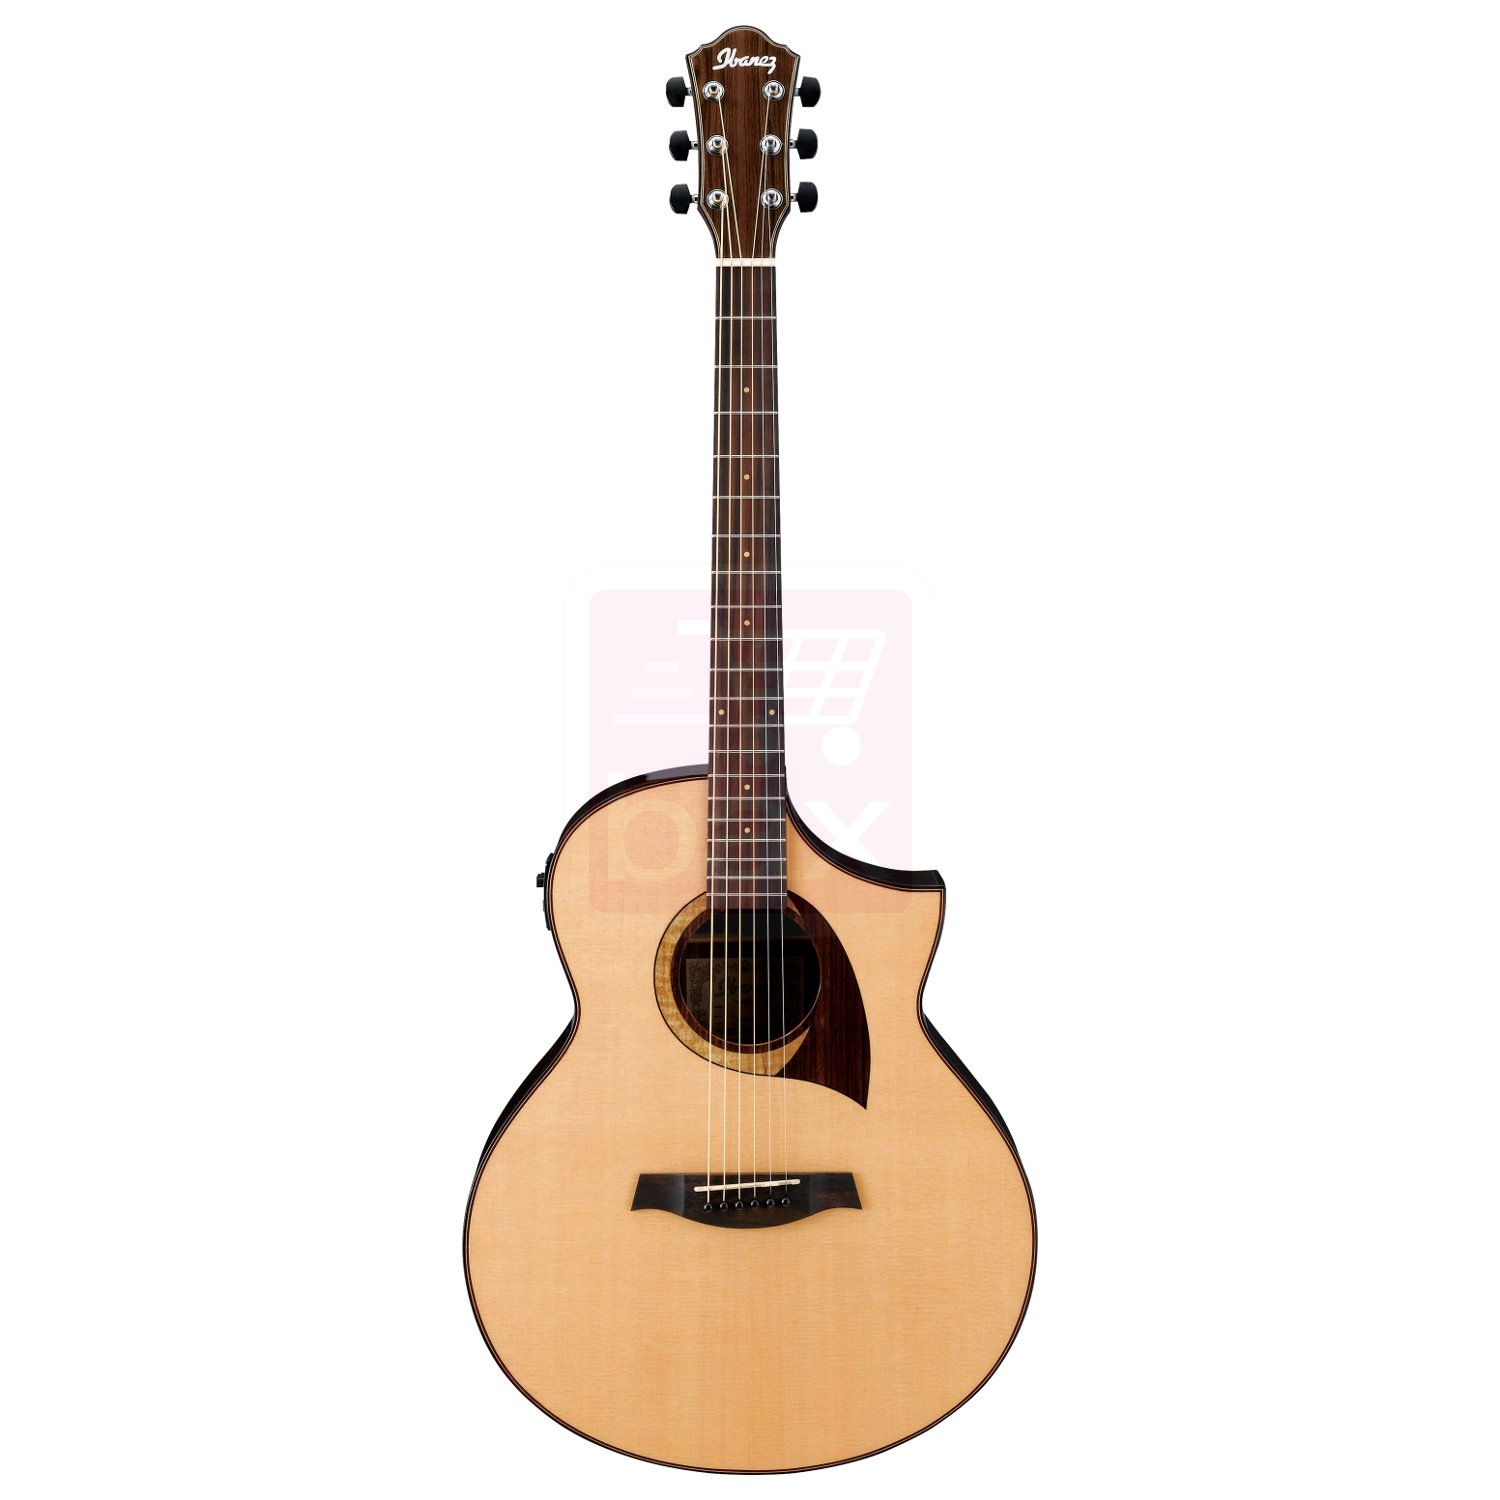 ibanez aew22cd nt guitare lectro acoustique. Black Bedroom Furniture Sets. Home Design Ideas